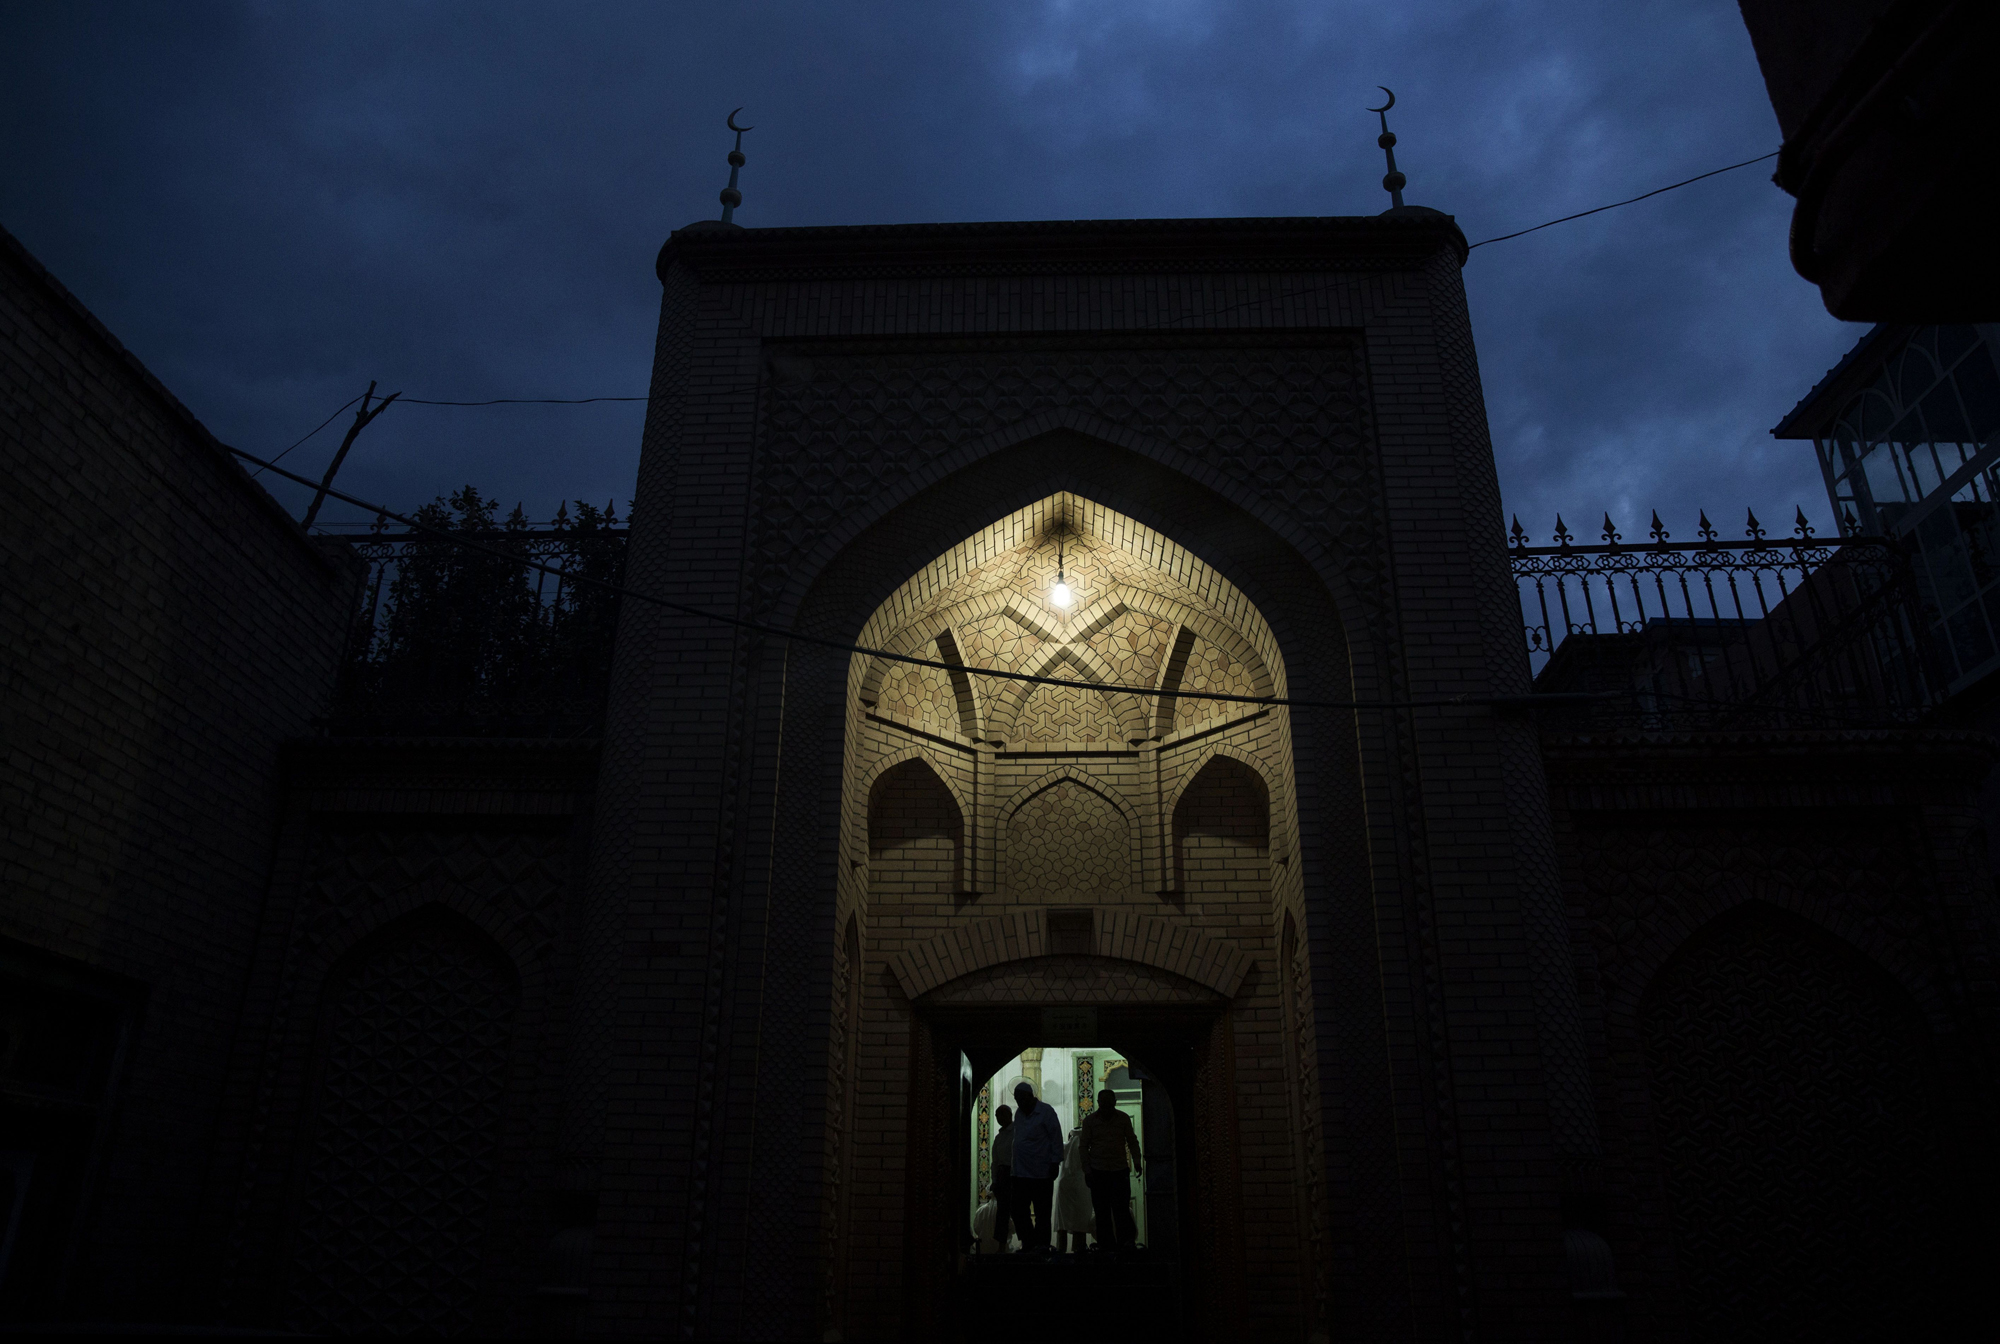 Uighur men leave a mosque after evening prayers on July 30, 2014 in Kashgar.